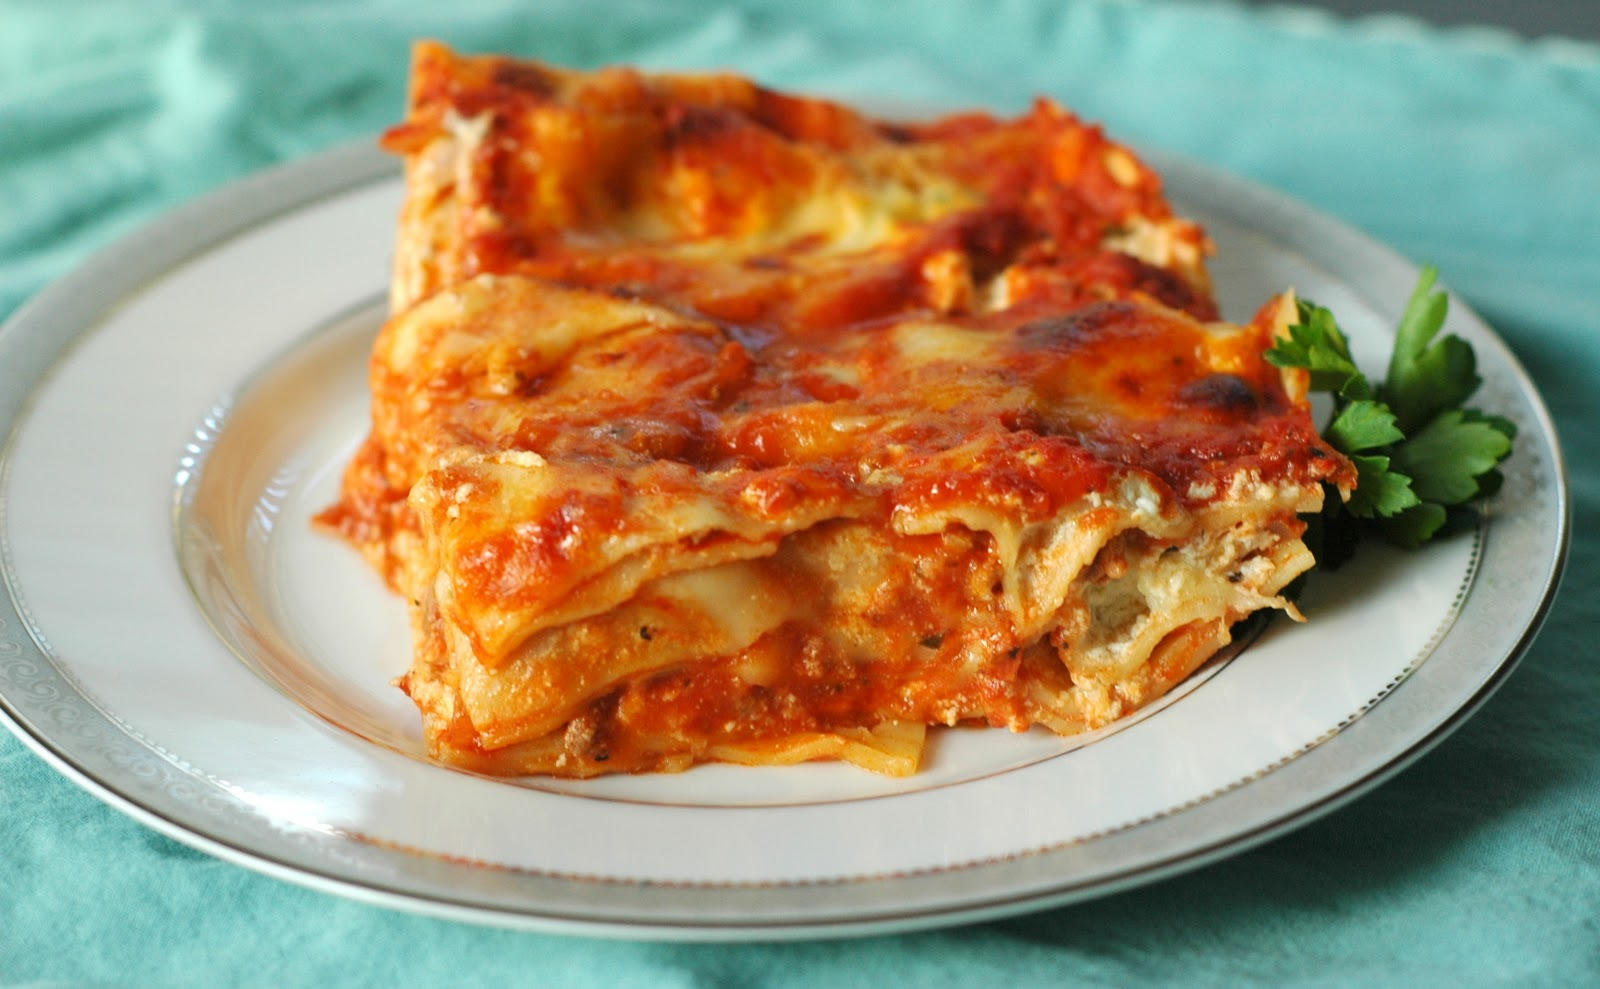 Good Thymes and Good Food: Four Cheese Lasagna